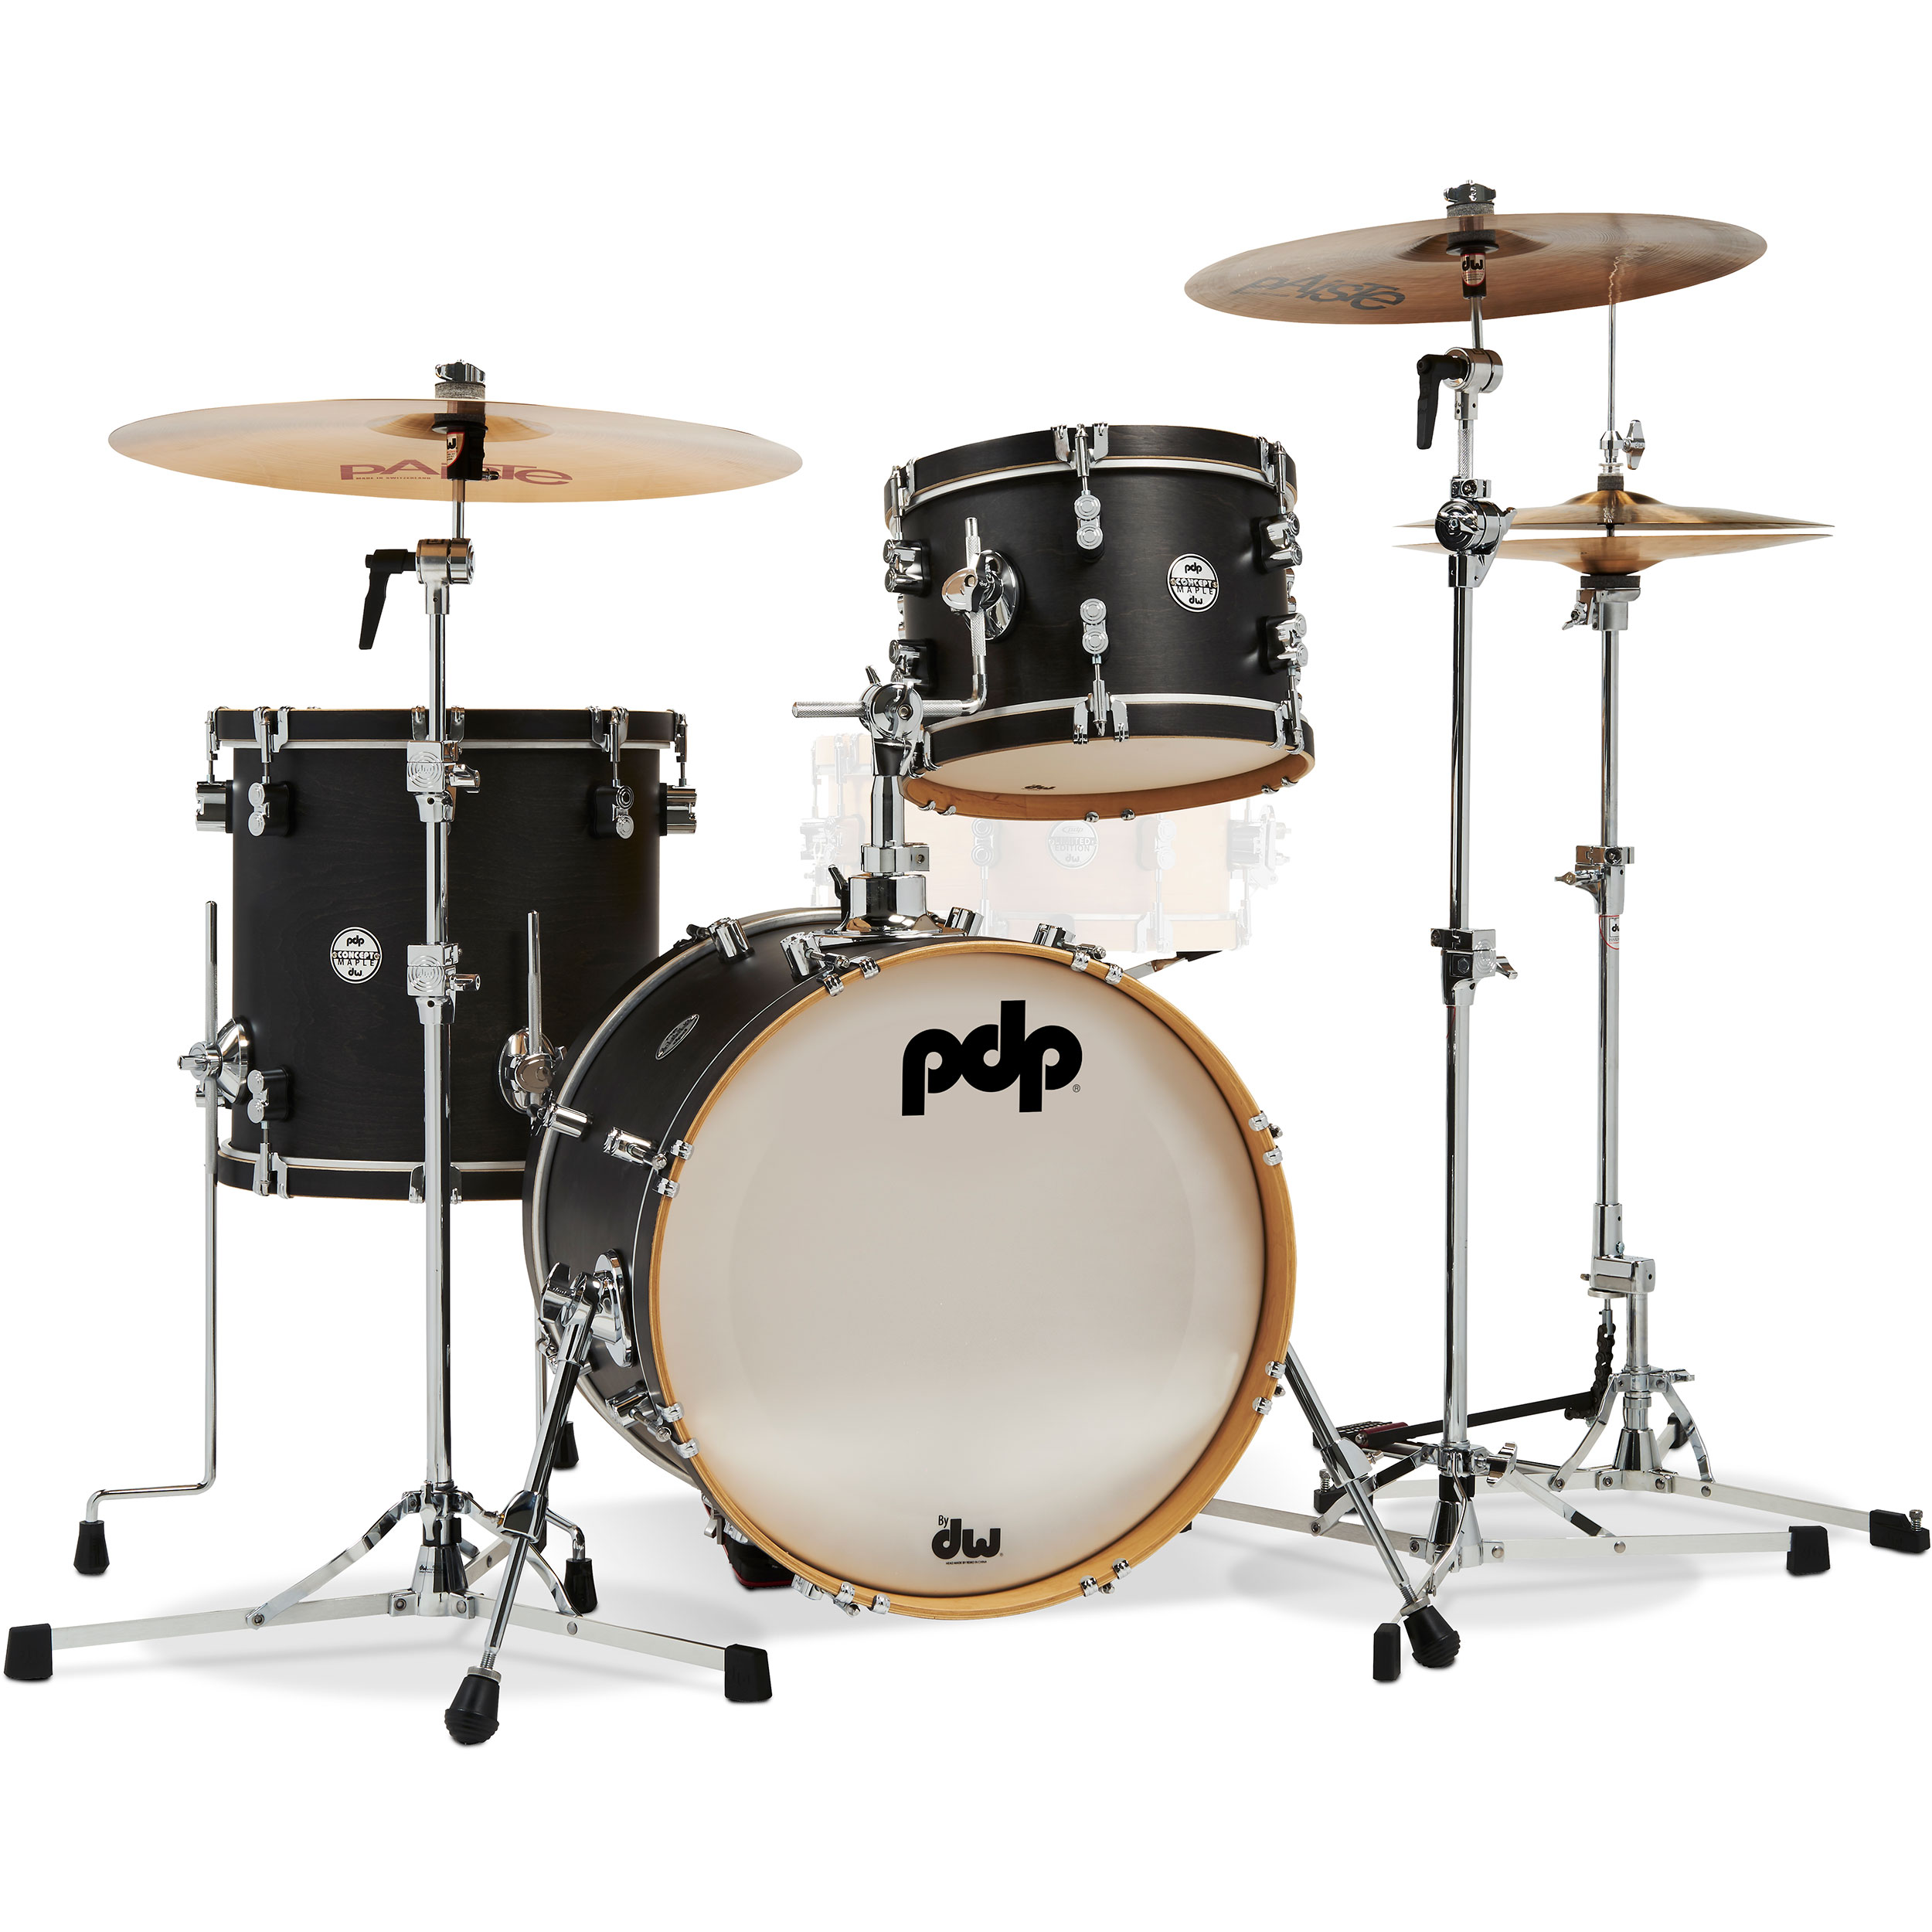 "PDP Concept Maple Classic Bop Kit 3-Piece Drum Set Shell Pack (18"" Bass, 12/14"" Toms)"